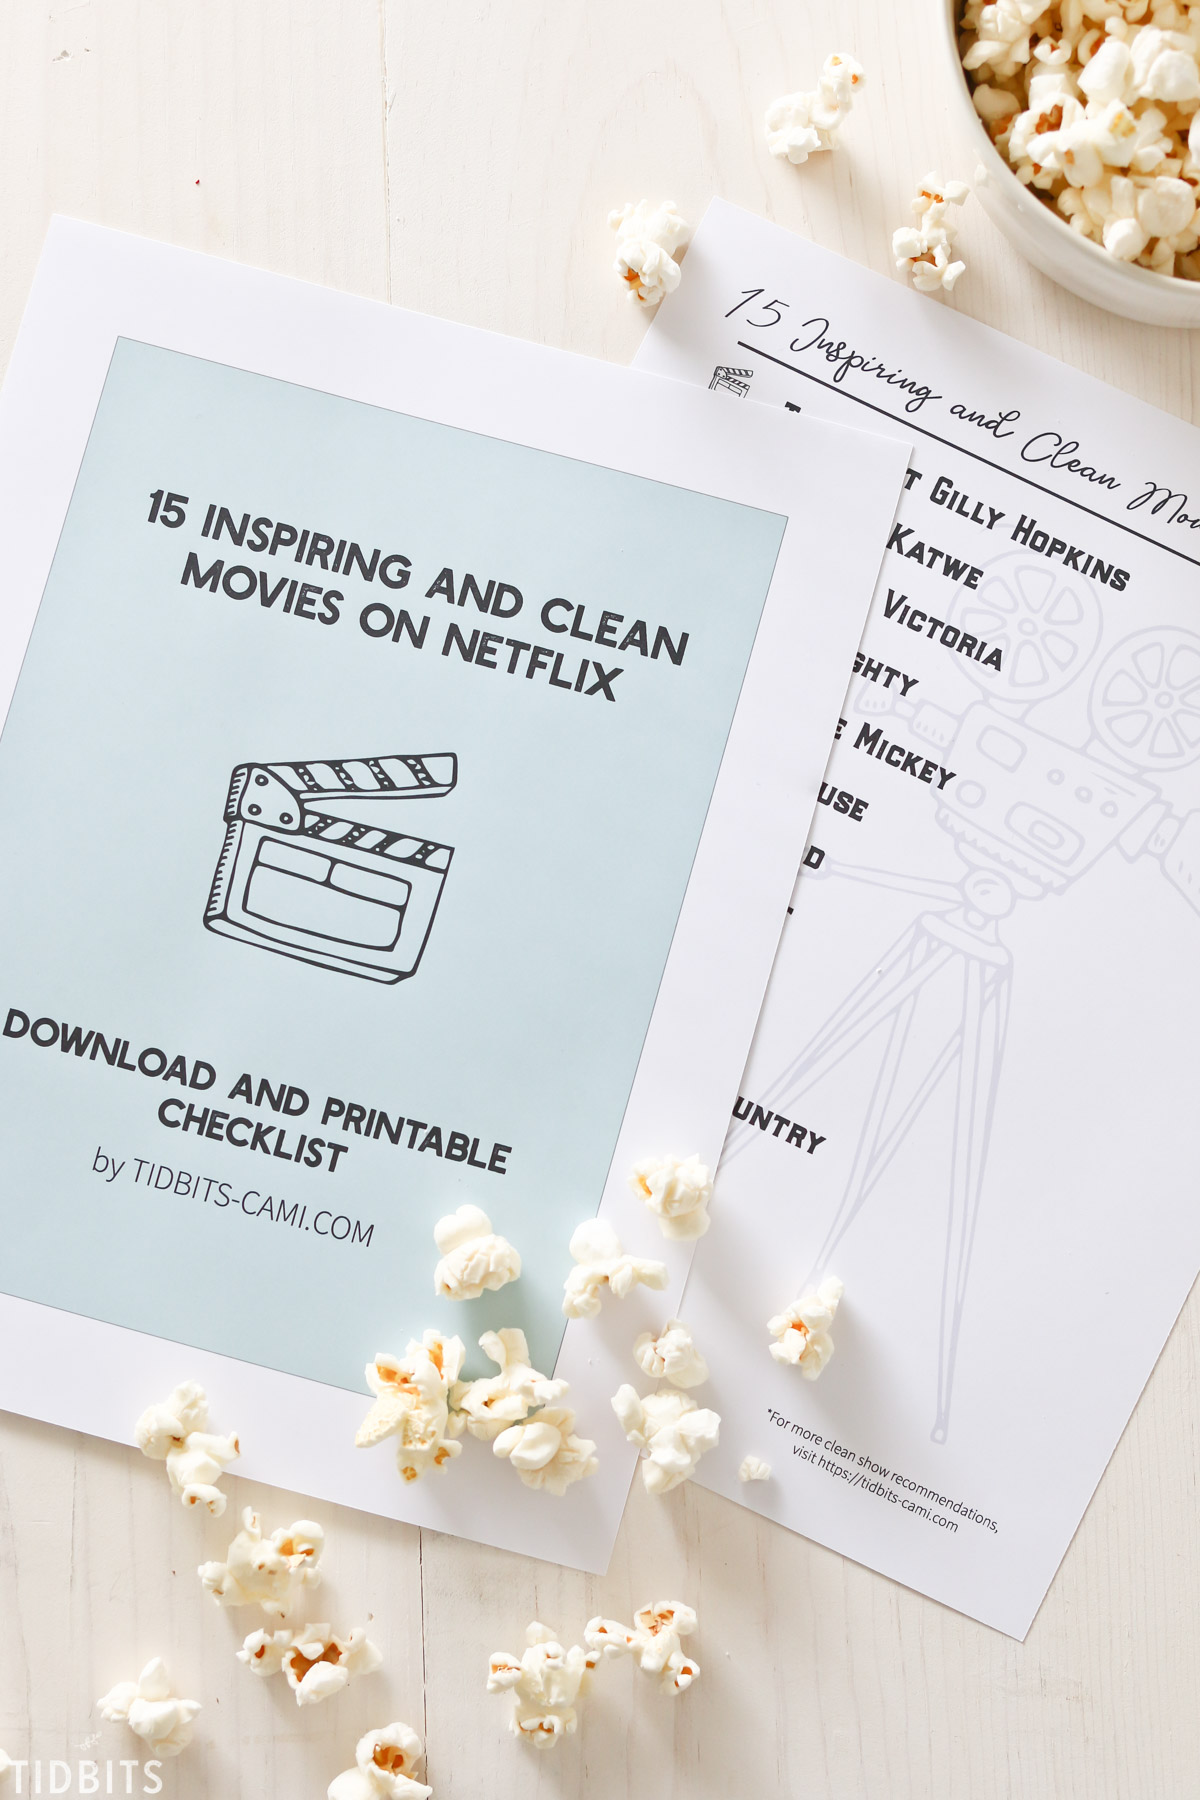 download and printable list of clean movies on netflix